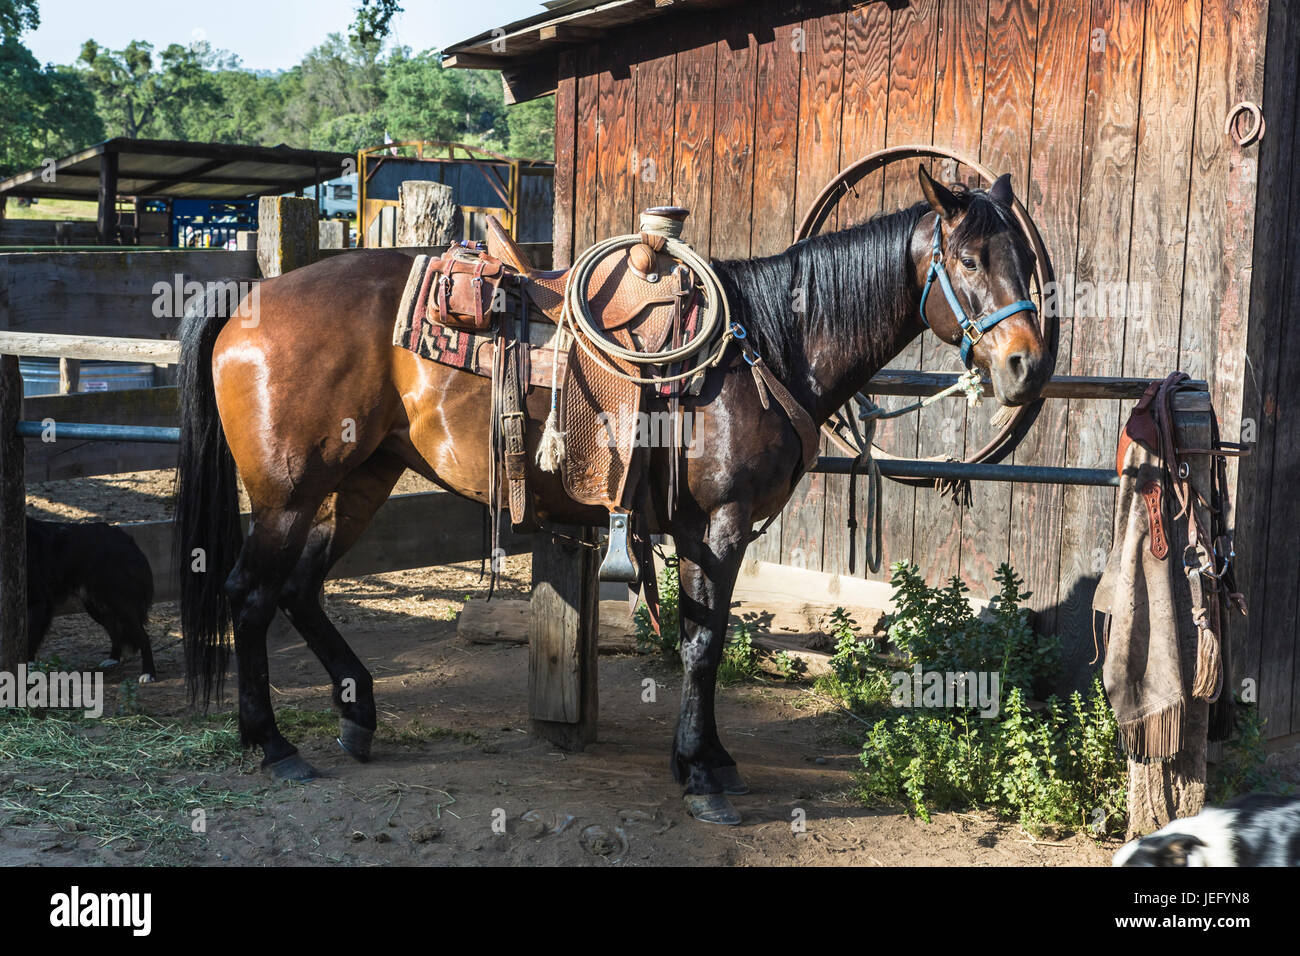 Western Horse Tied At Hitching Post At Barn On Ranch Stock Photo Alamy